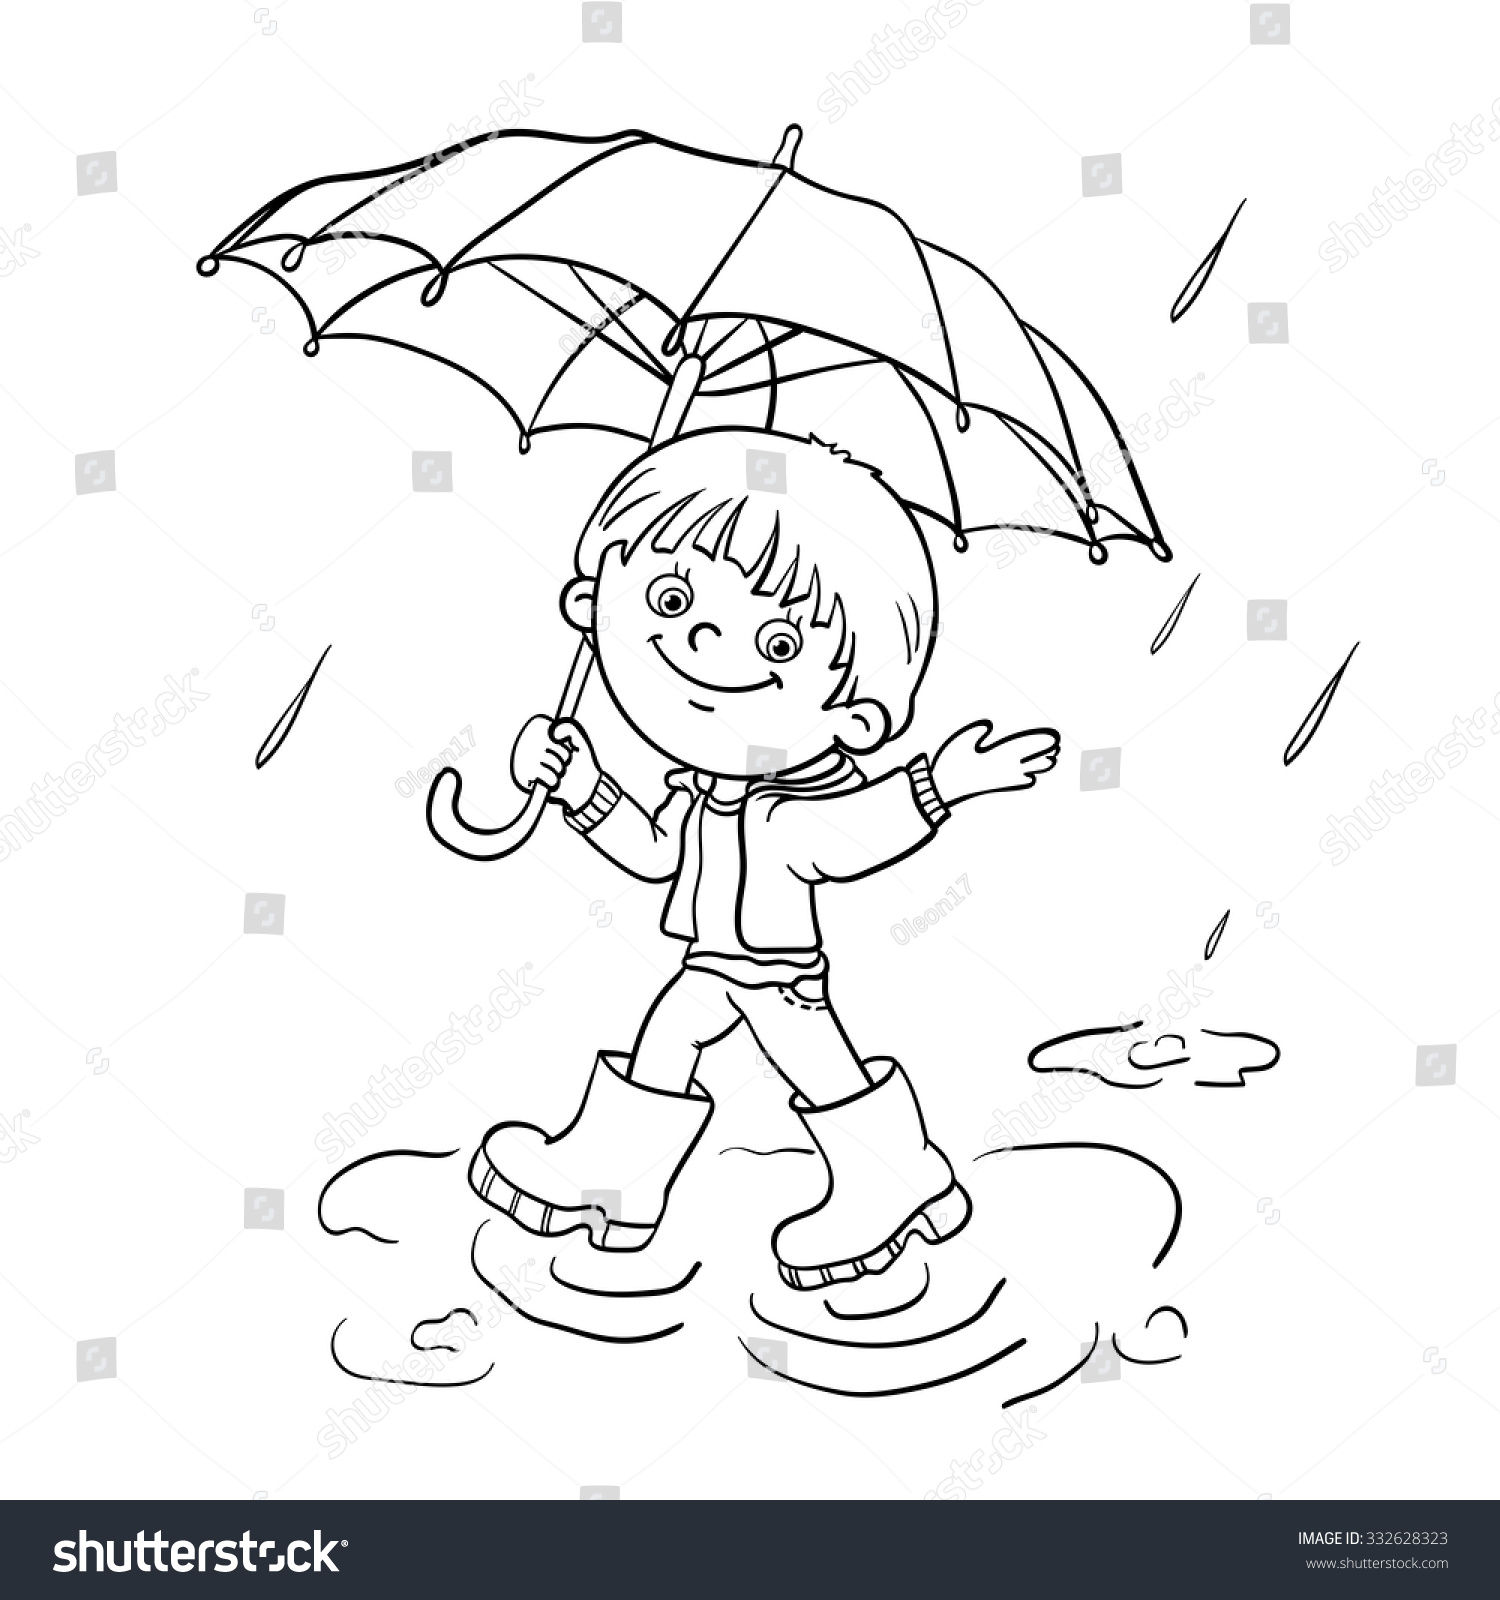 coloring page outline cartoon joyful boy stock vector 332628323